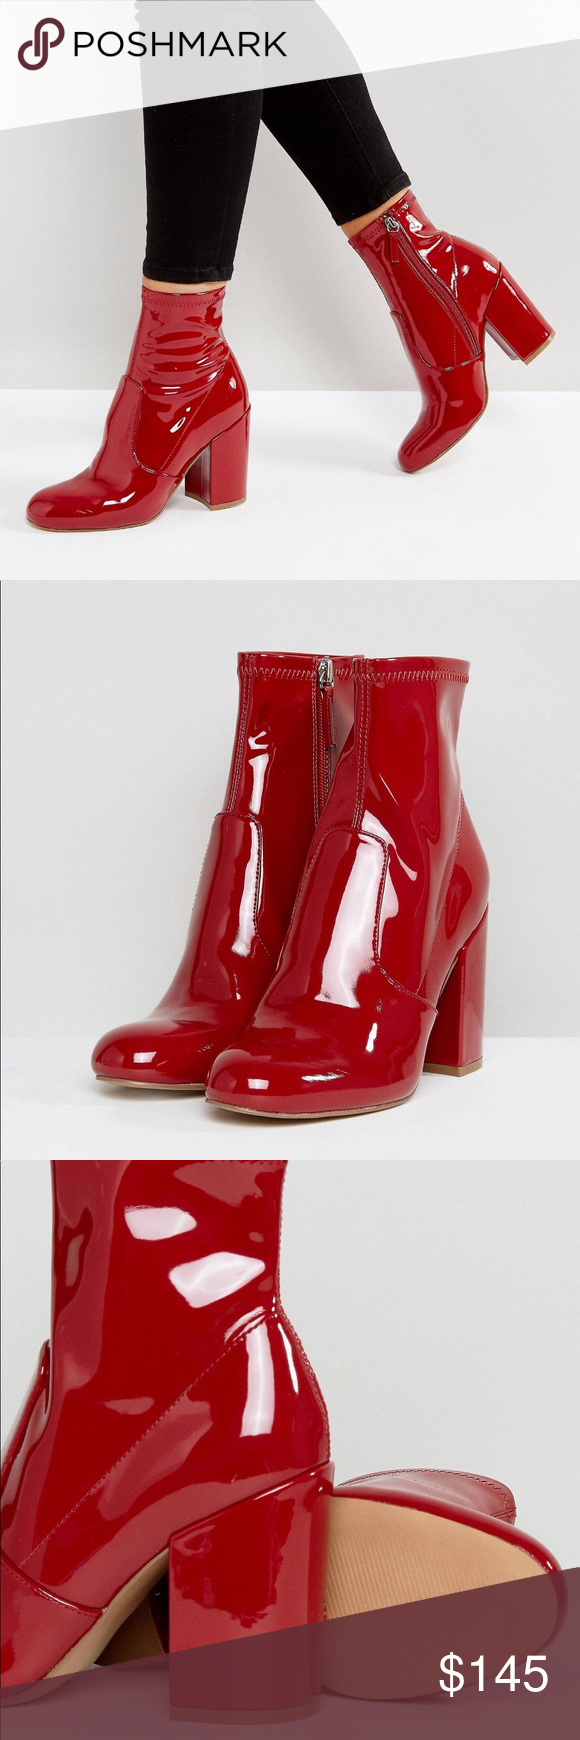 801b27a0bff Steve Madden Gaze Ankle Boots in Red Patent ❤️❤️Size US 8.5 ...